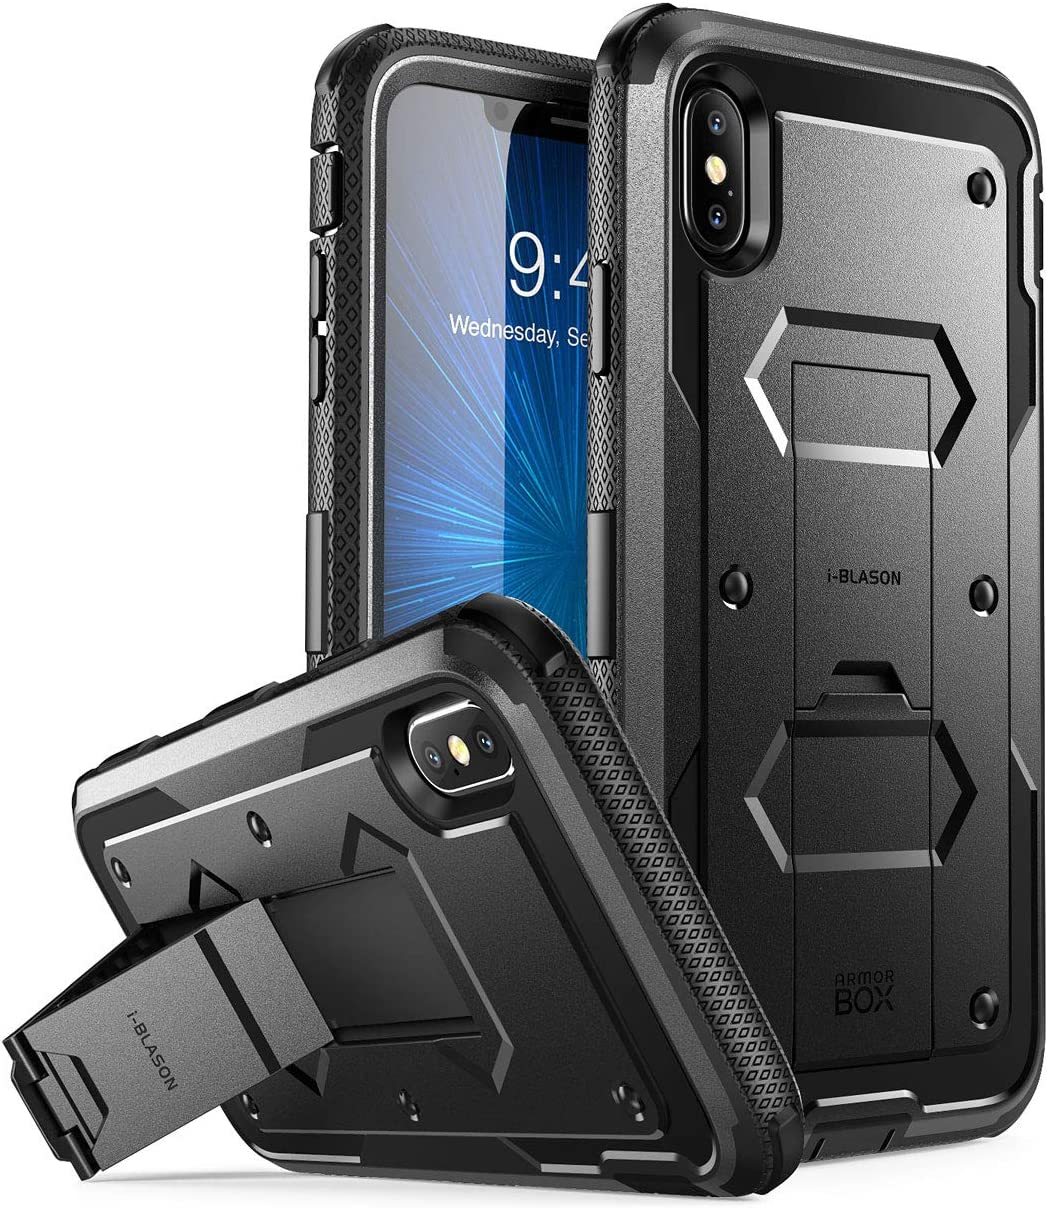 i-Blason Case for iPhone Xs Max 2018 Release, Built in Screen Protector Armorbox Full Body Heavy Duty Protection Kickstand Shock Reduction Case (Black), 6.5""